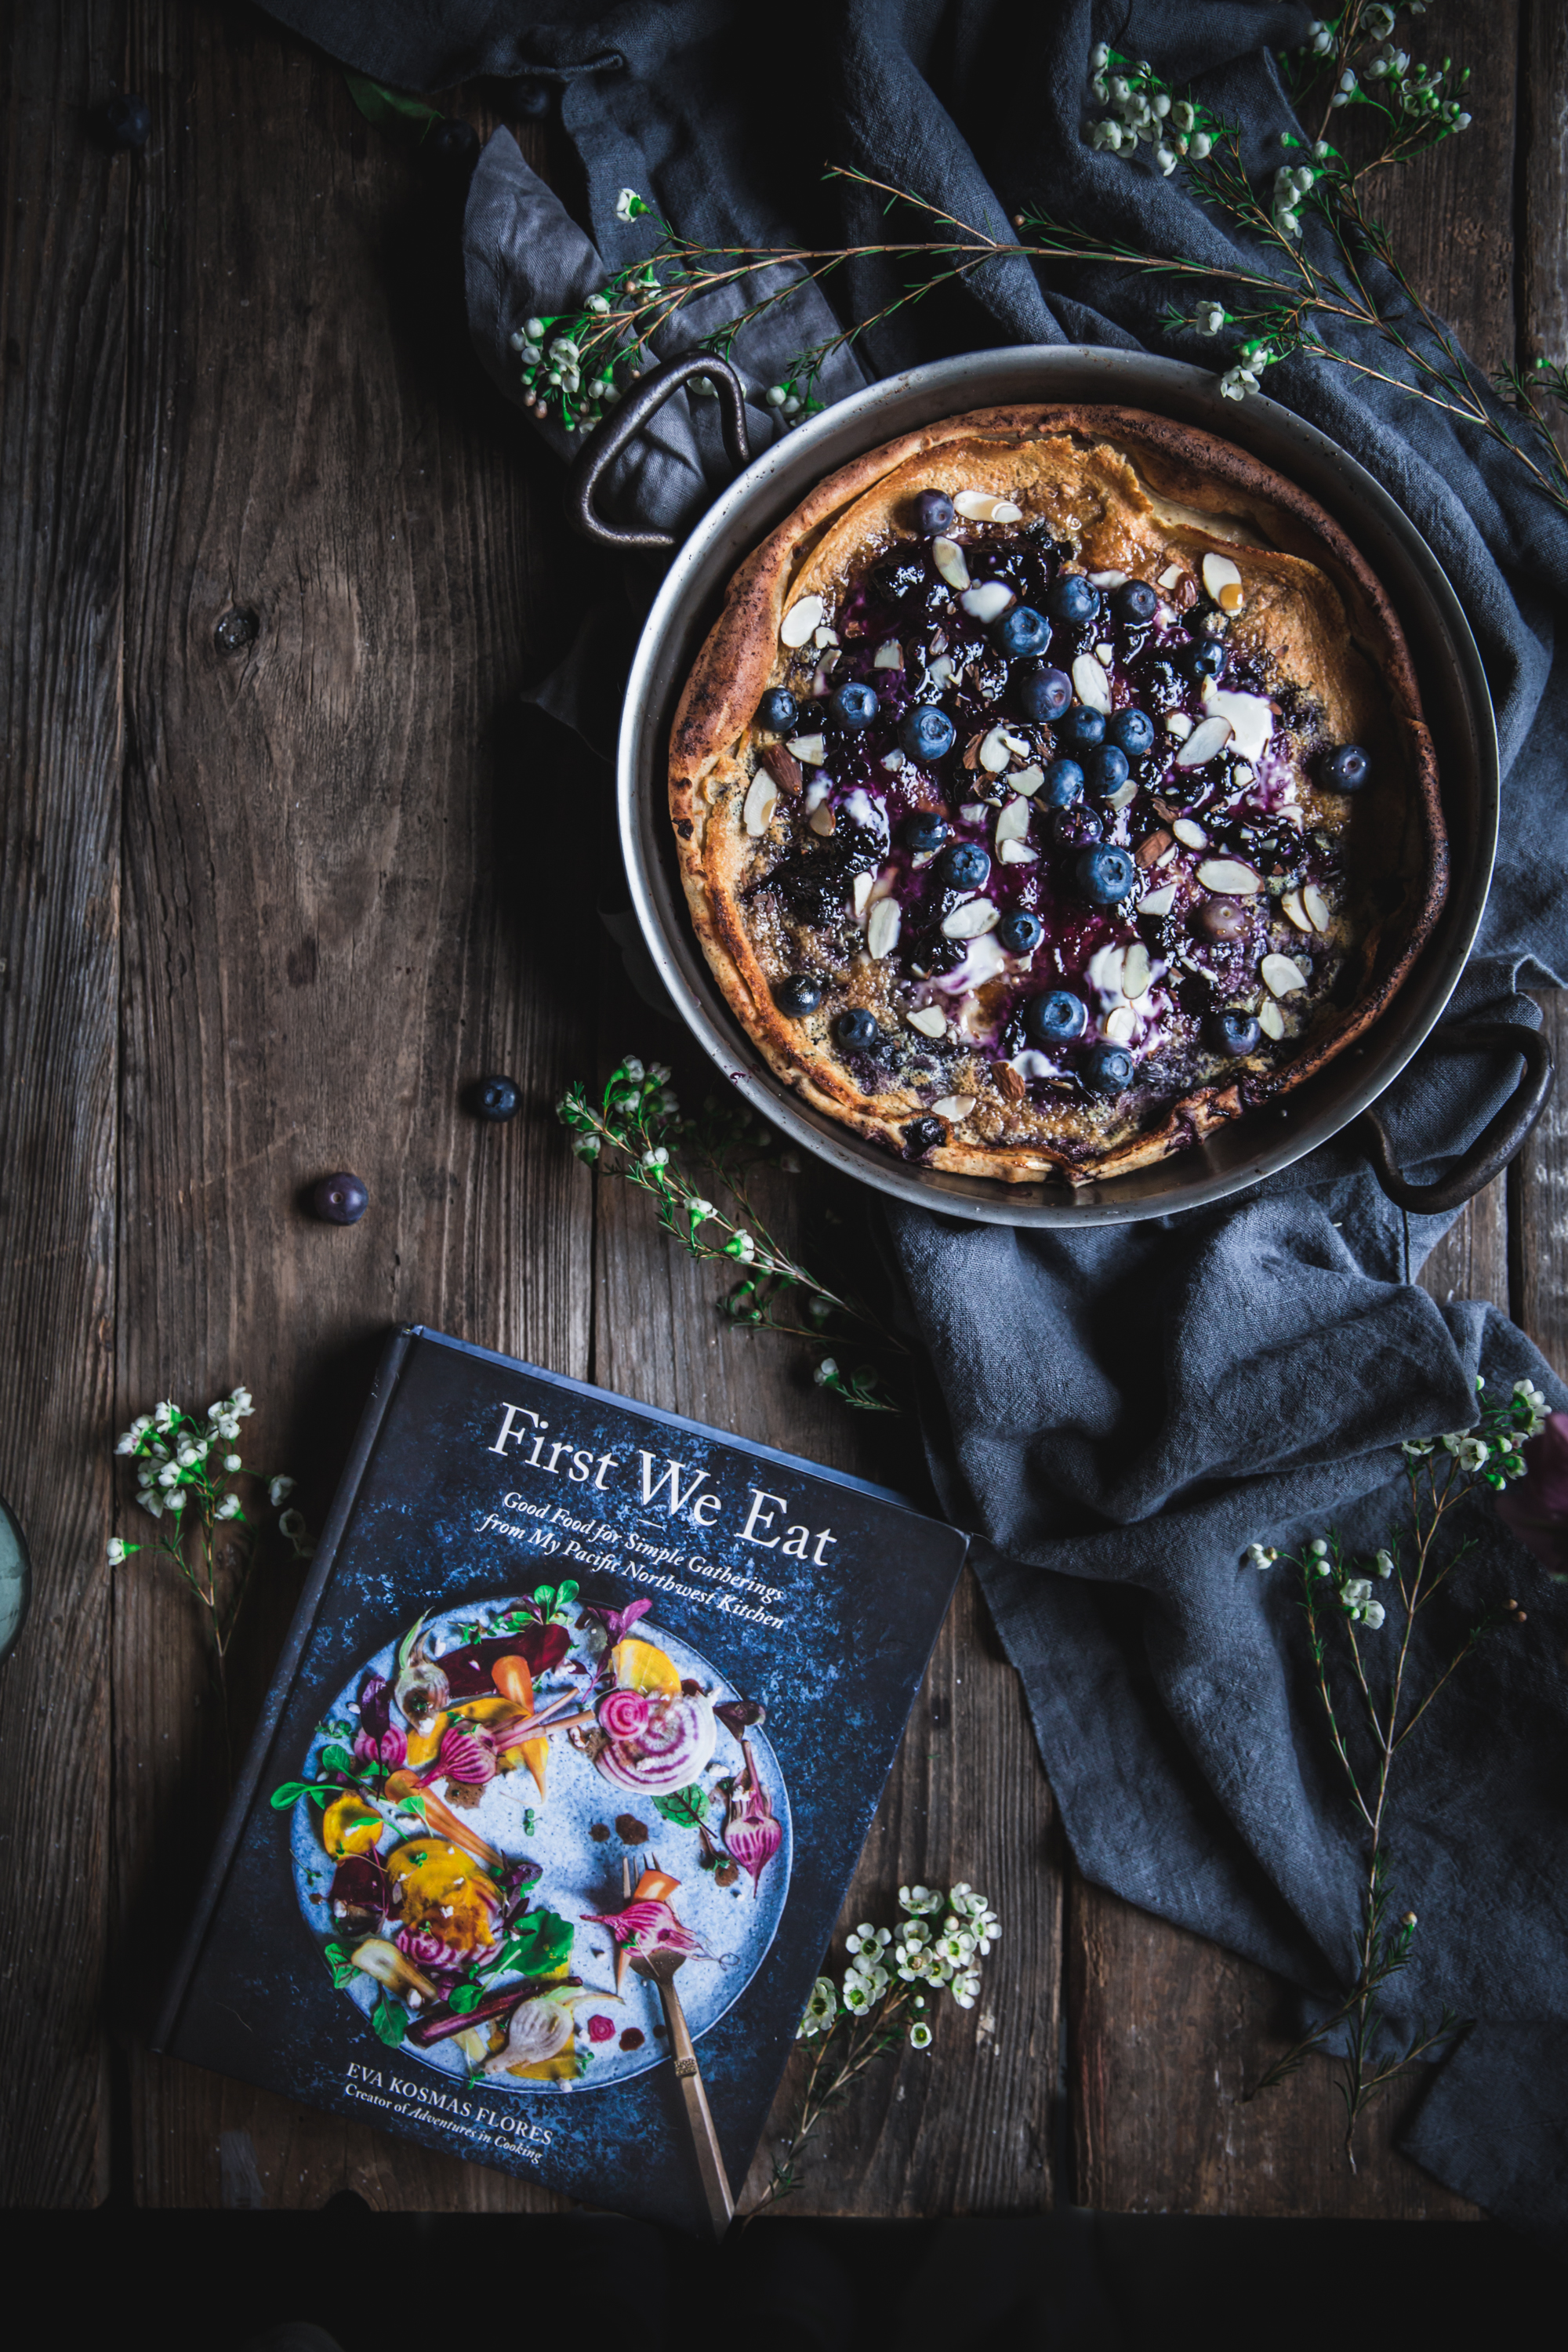 First we eat cookbook a blueberry dutch baby adventures in cooking blueberry dutch baby from the cookbook first we eat by eva kosmas flores forumfinder Images